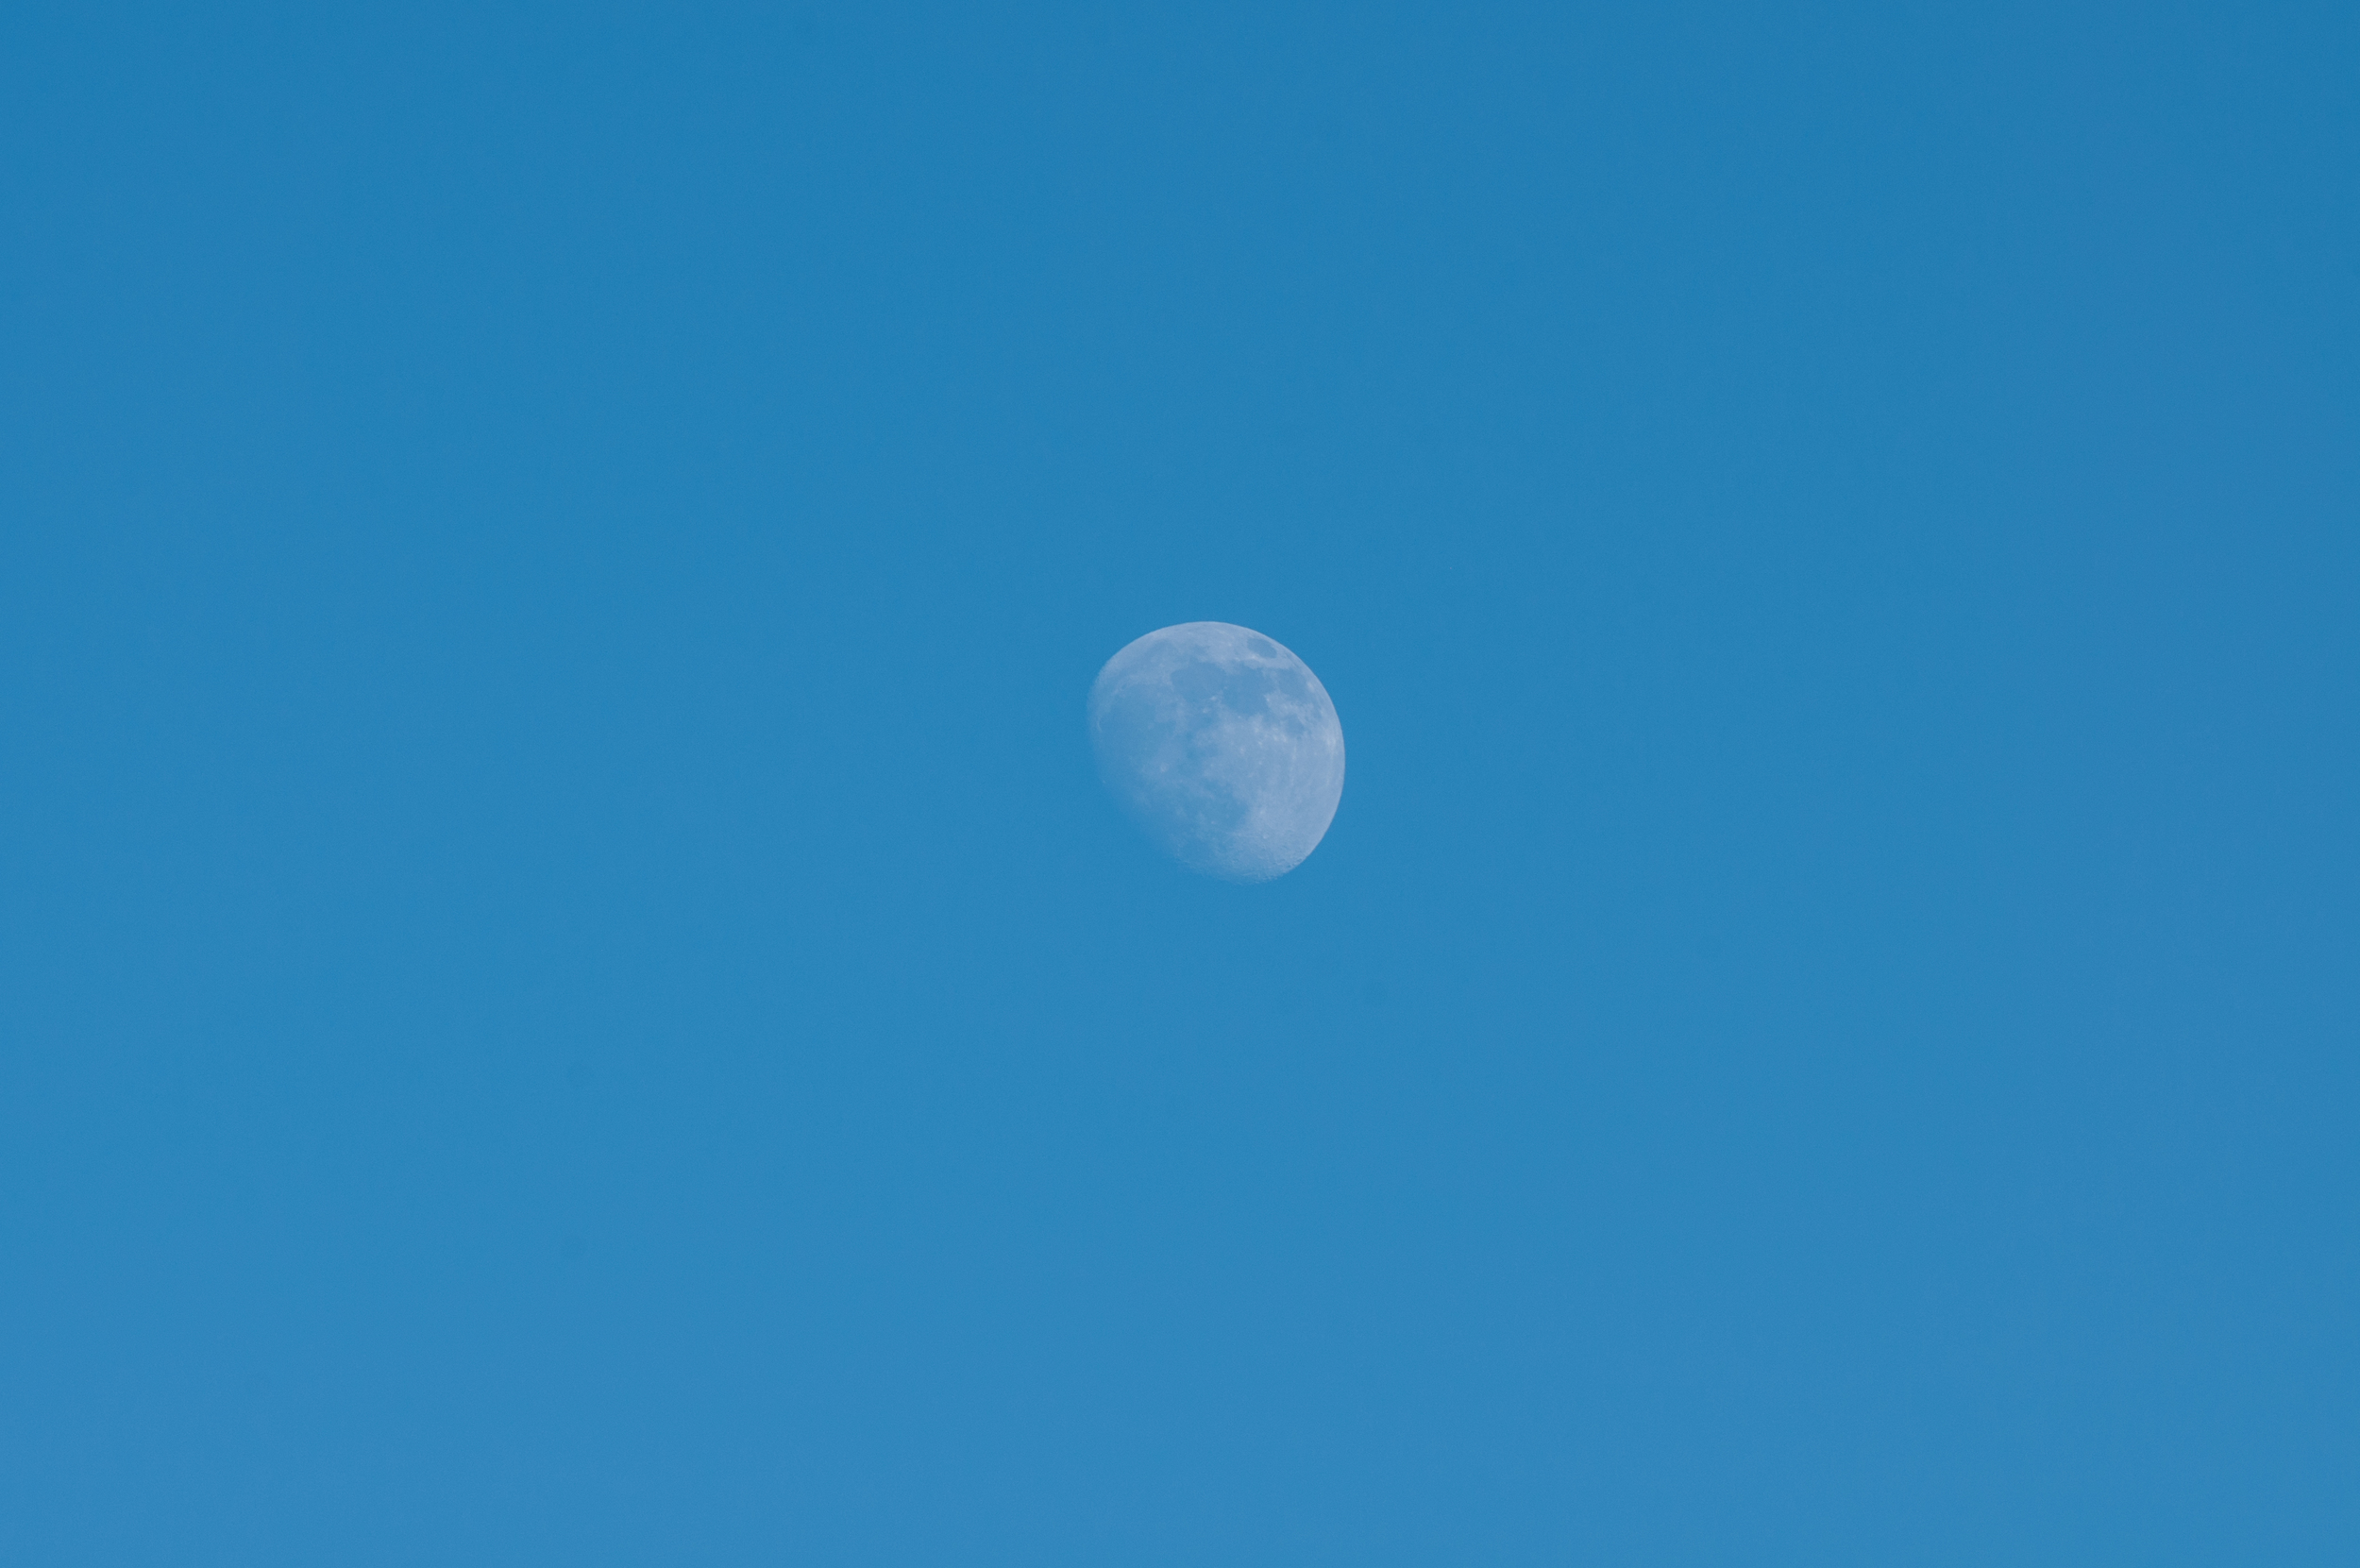 Moon during the day - 140609 - DSC_1424.JPG